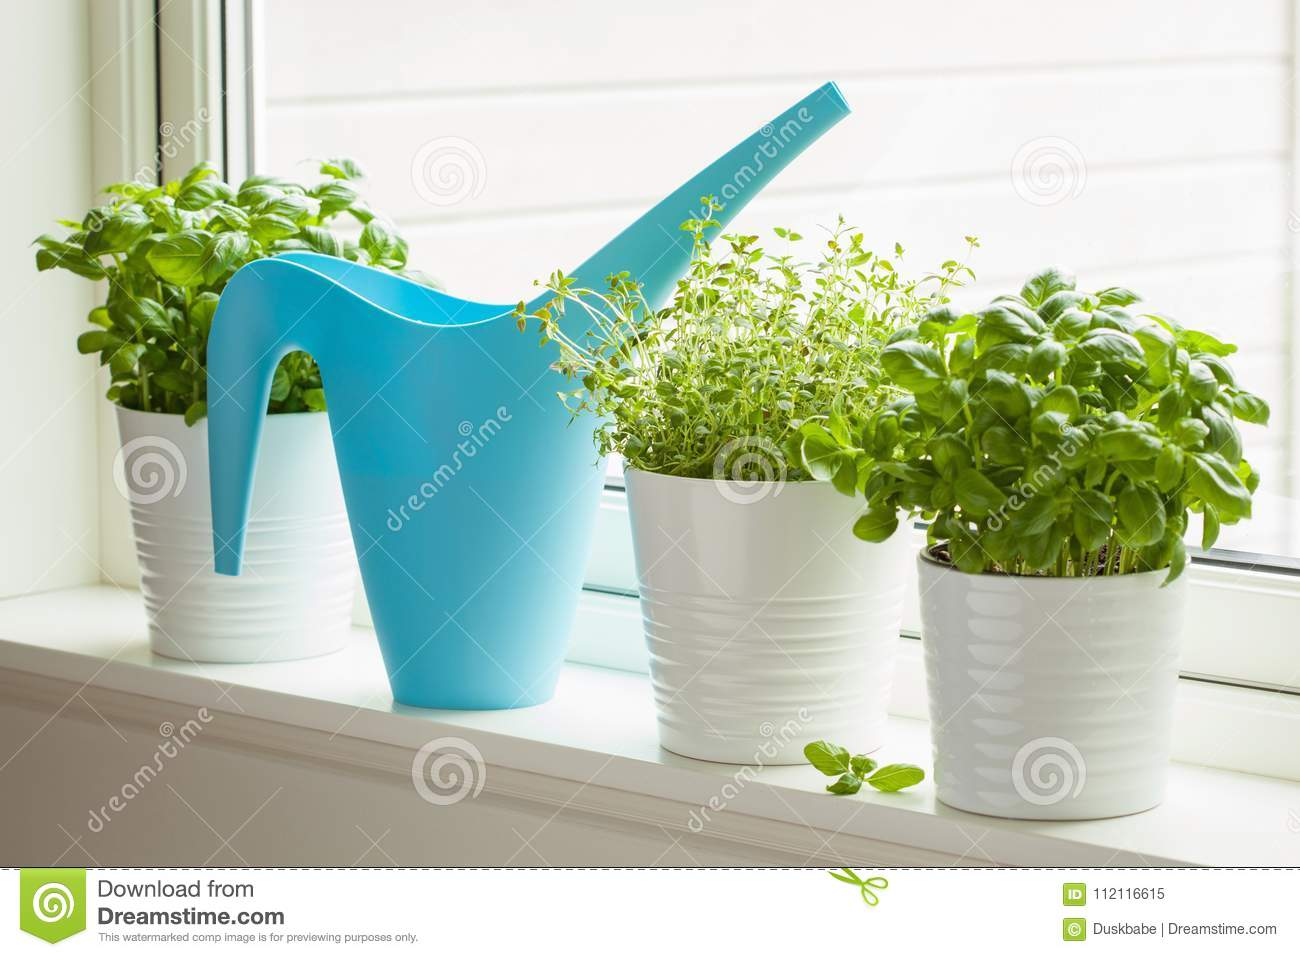 Fresh basil and thyme herbs in flowerpot on window, watering can